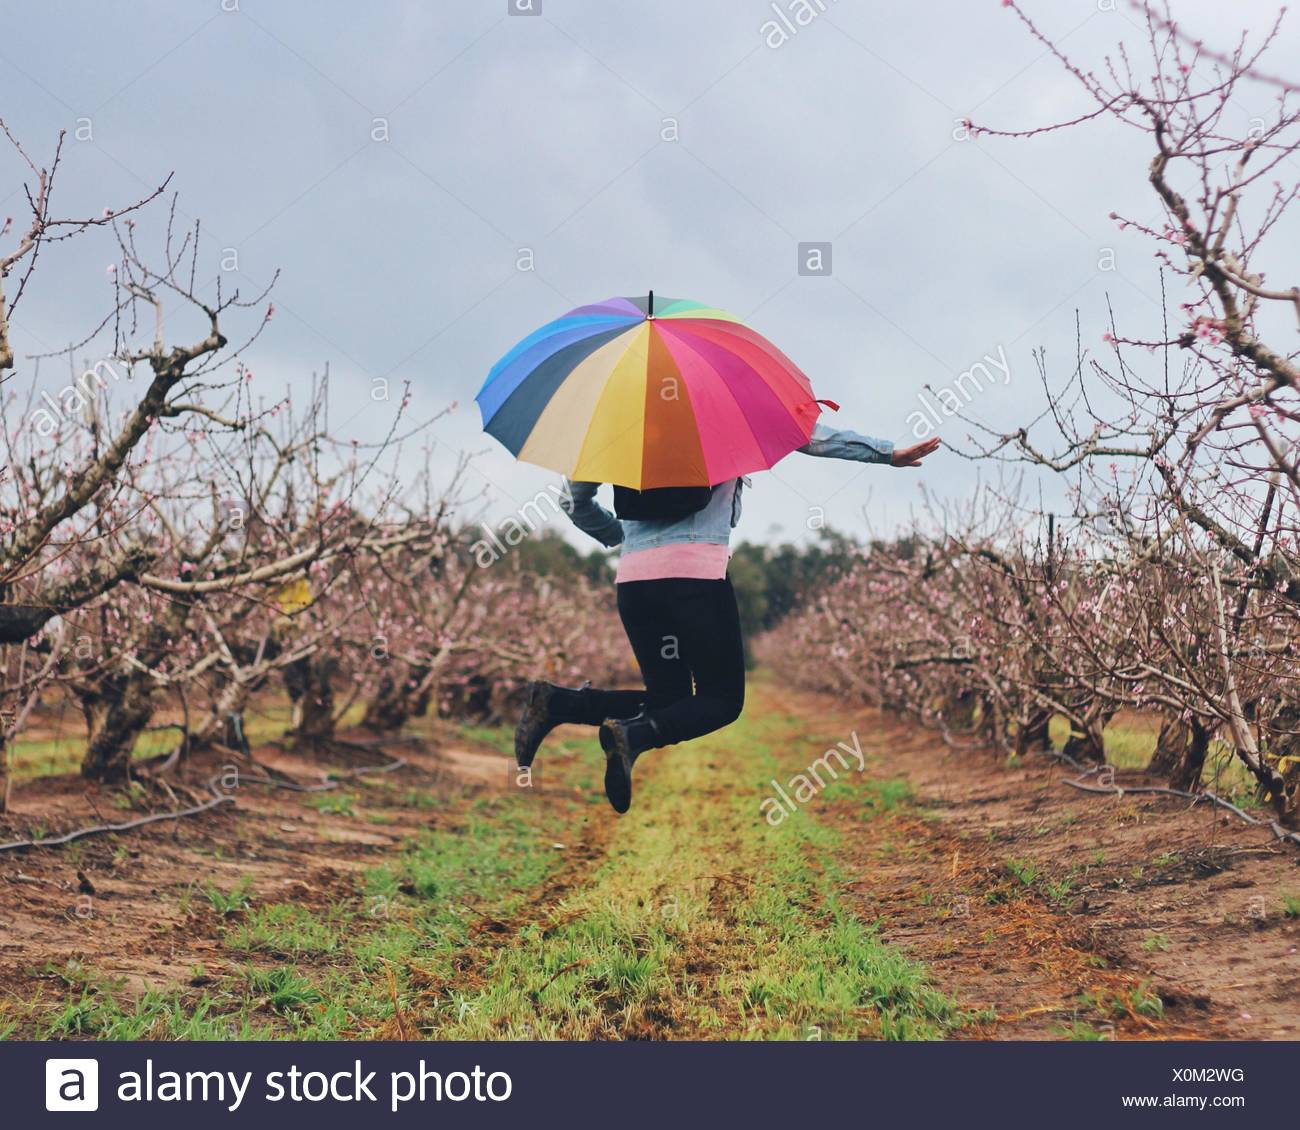 Woman With Colorful Umbrella Jumping Over Grassy Field Against Sky - Stock Image